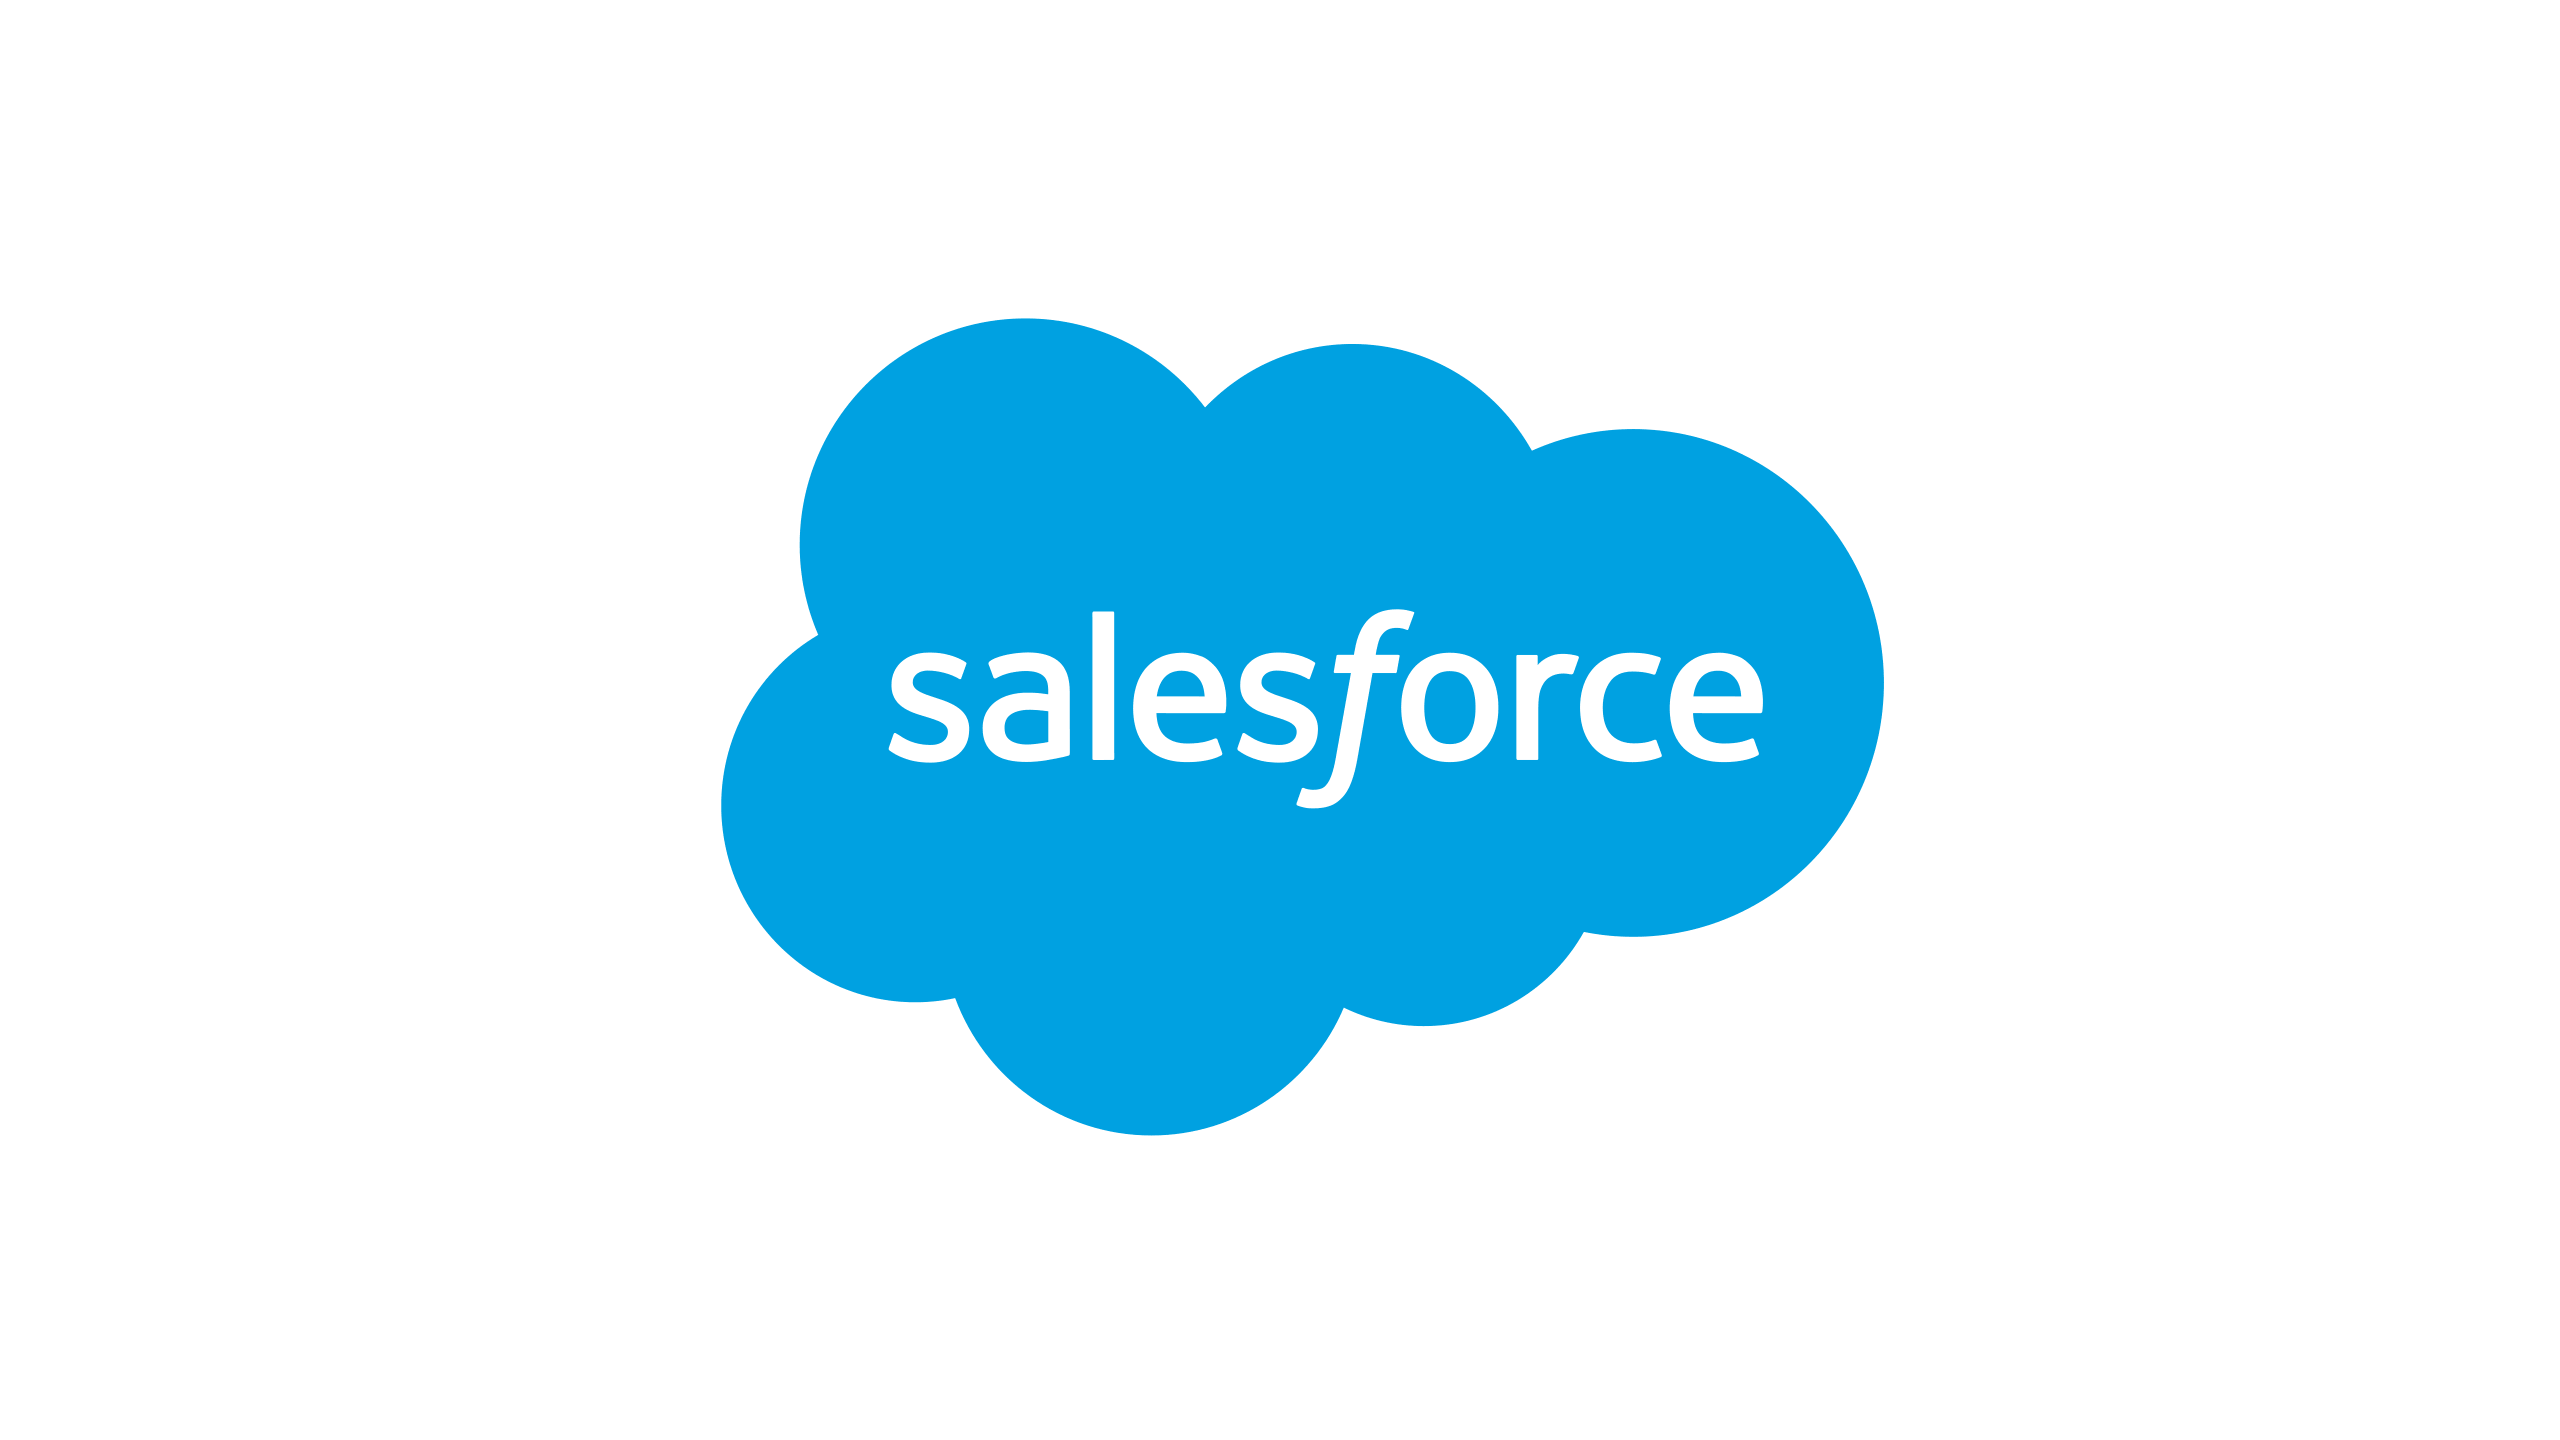 salesforce-brand-logo-blue-on-white